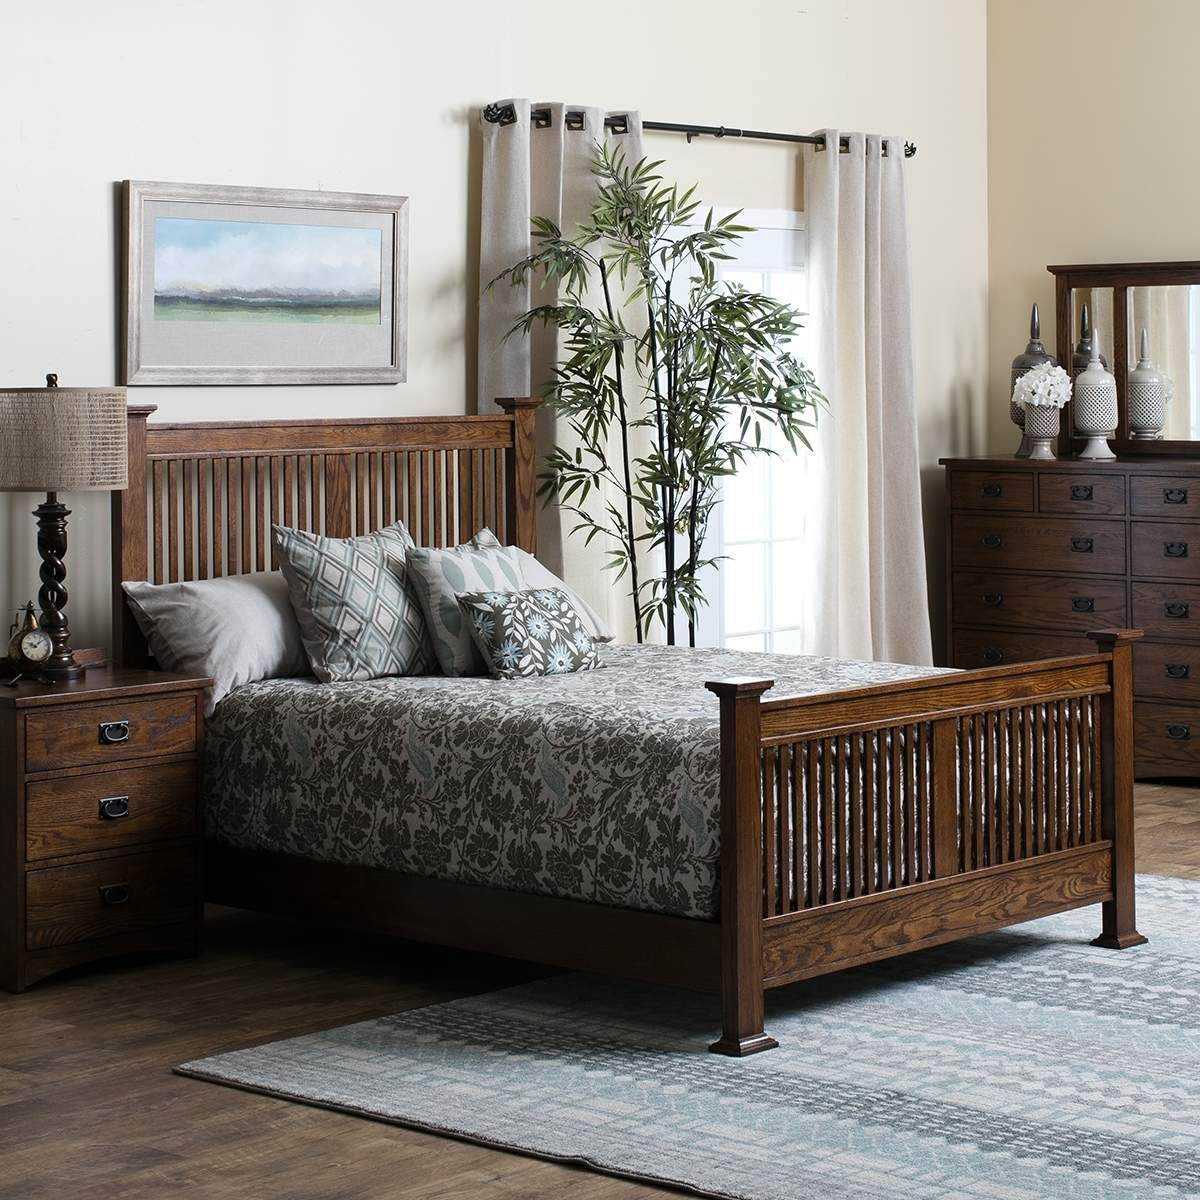 The Oak Park Bedroom Furniture Group Is A Casual Styled Collection Constructed From 100 Solid American Red Oak With A Beautiful Mis Bedroom Design In 2019